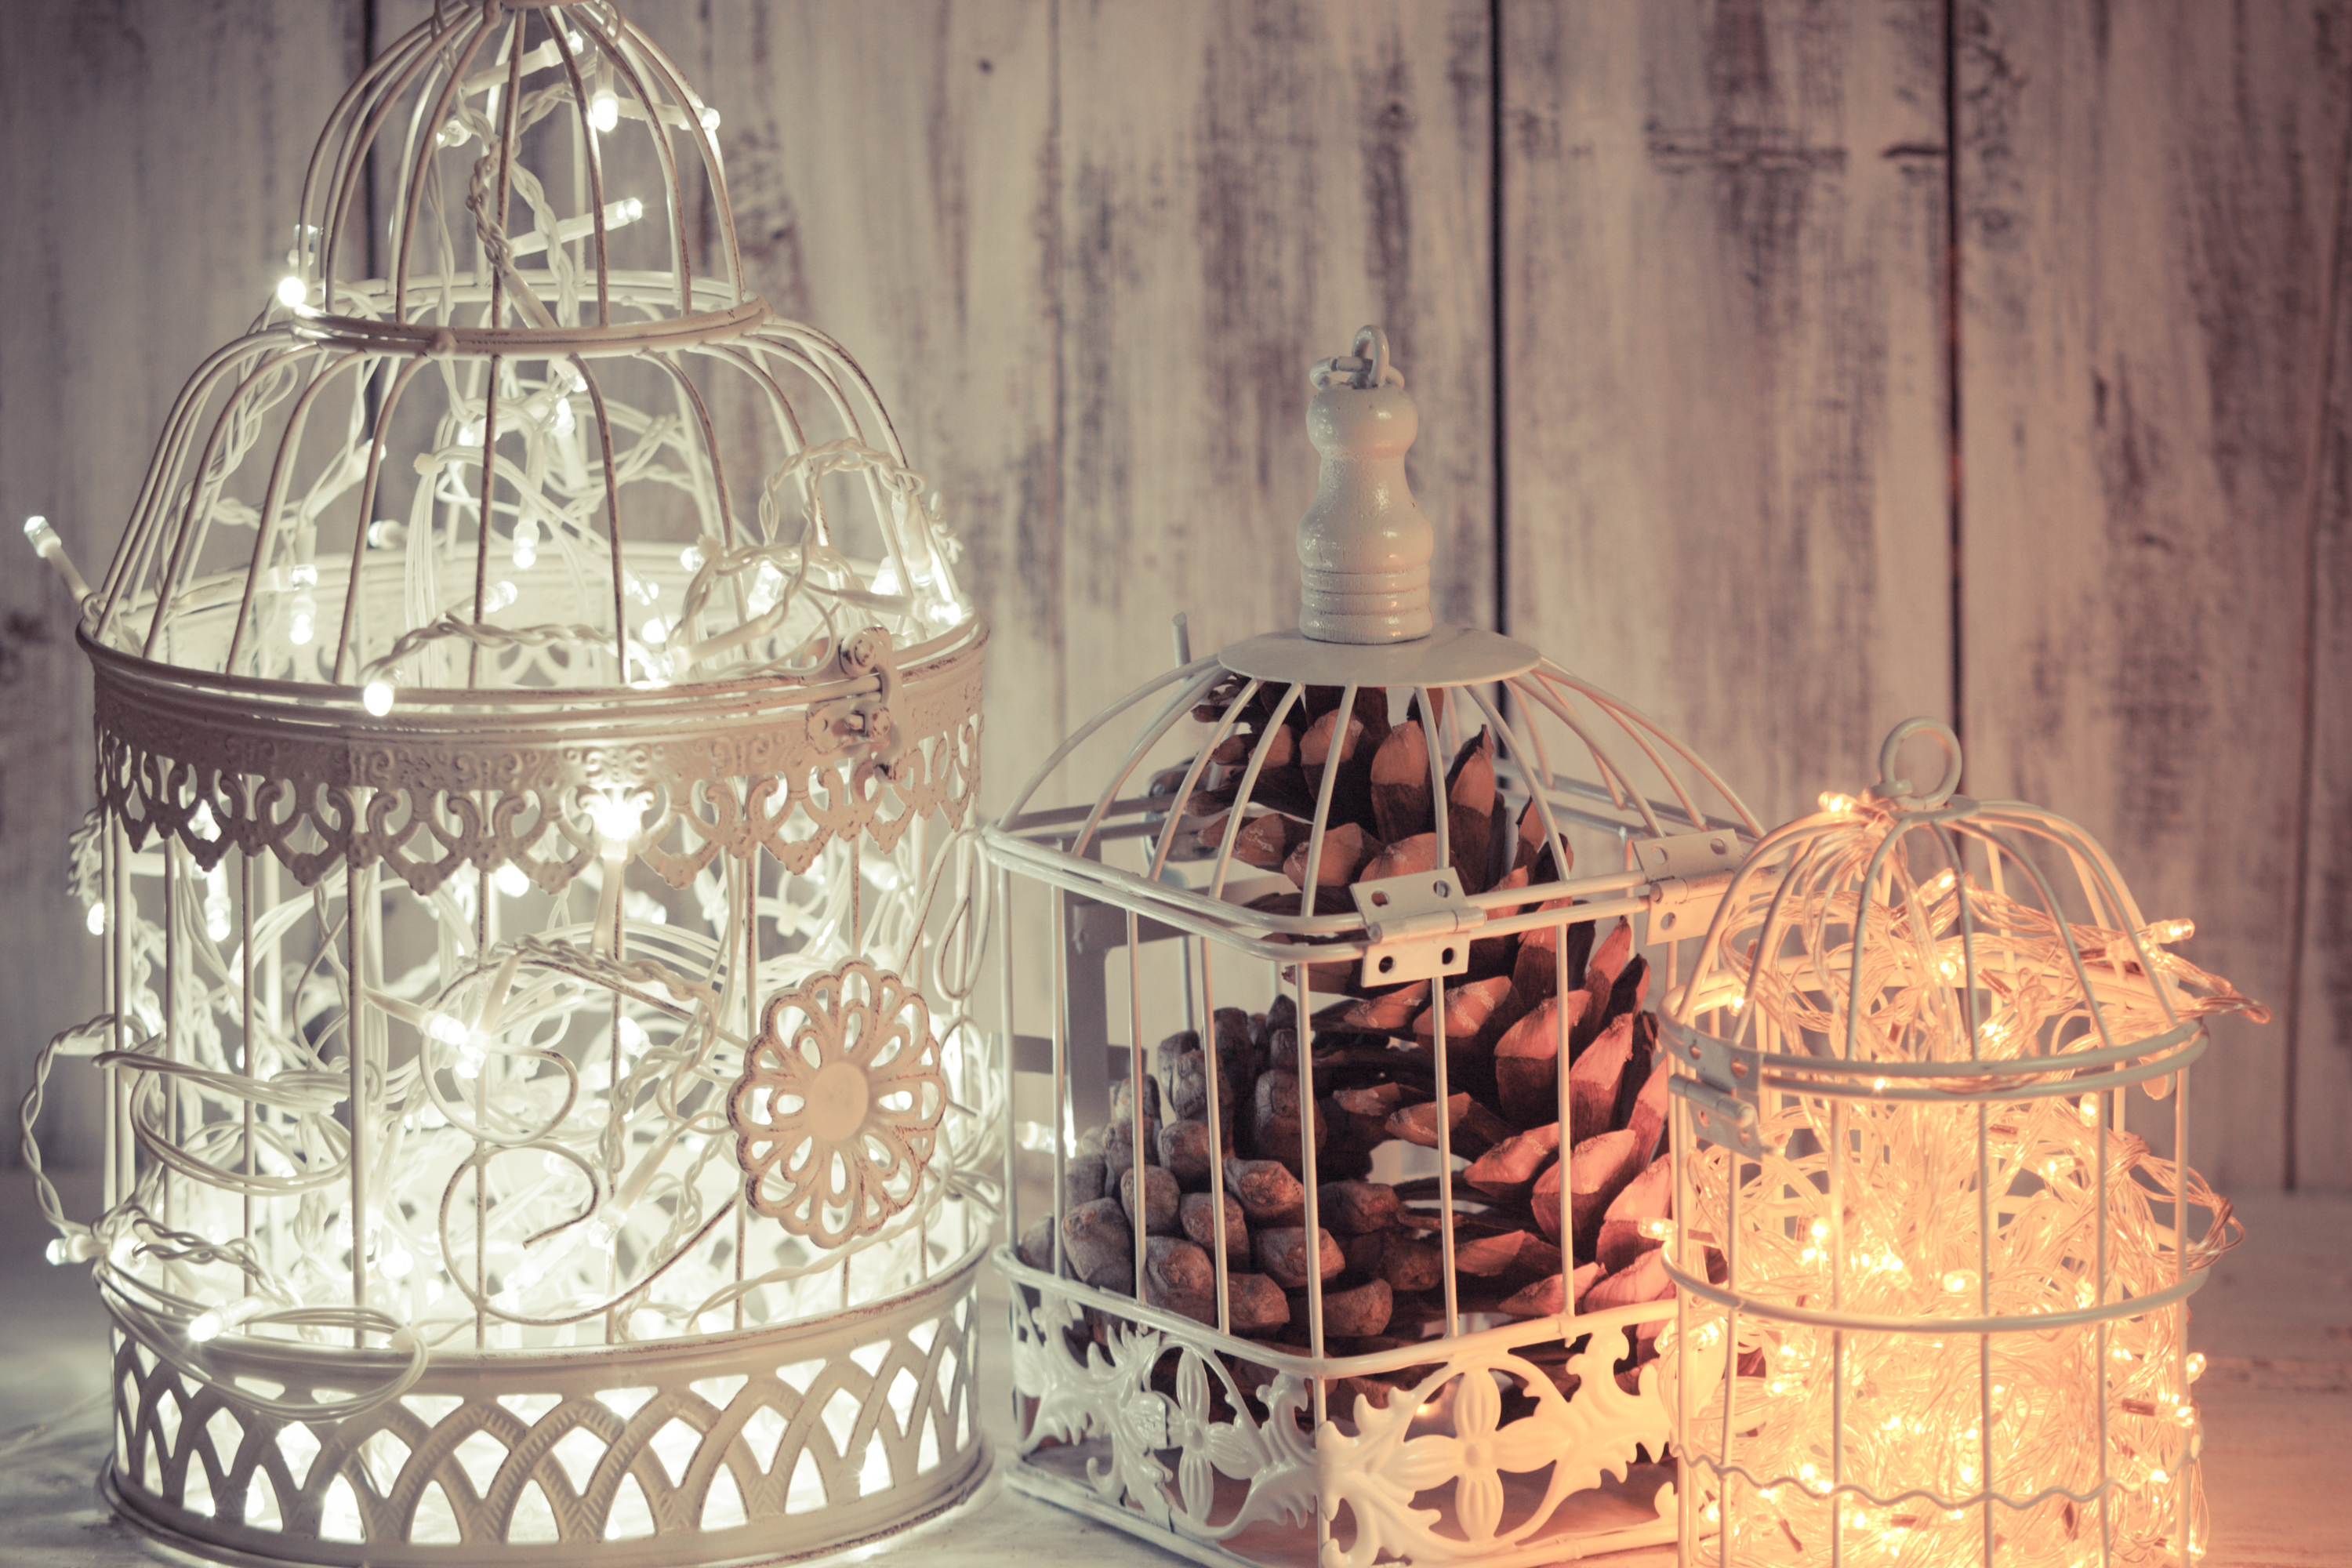 It's easy to spend money in the winter, especially if you have your wedding in the winter time. Between the holidays and your wedding, you'll want to save where you can. Check out these DIY Christmas wedding decorations! They're beautiful and cheap.